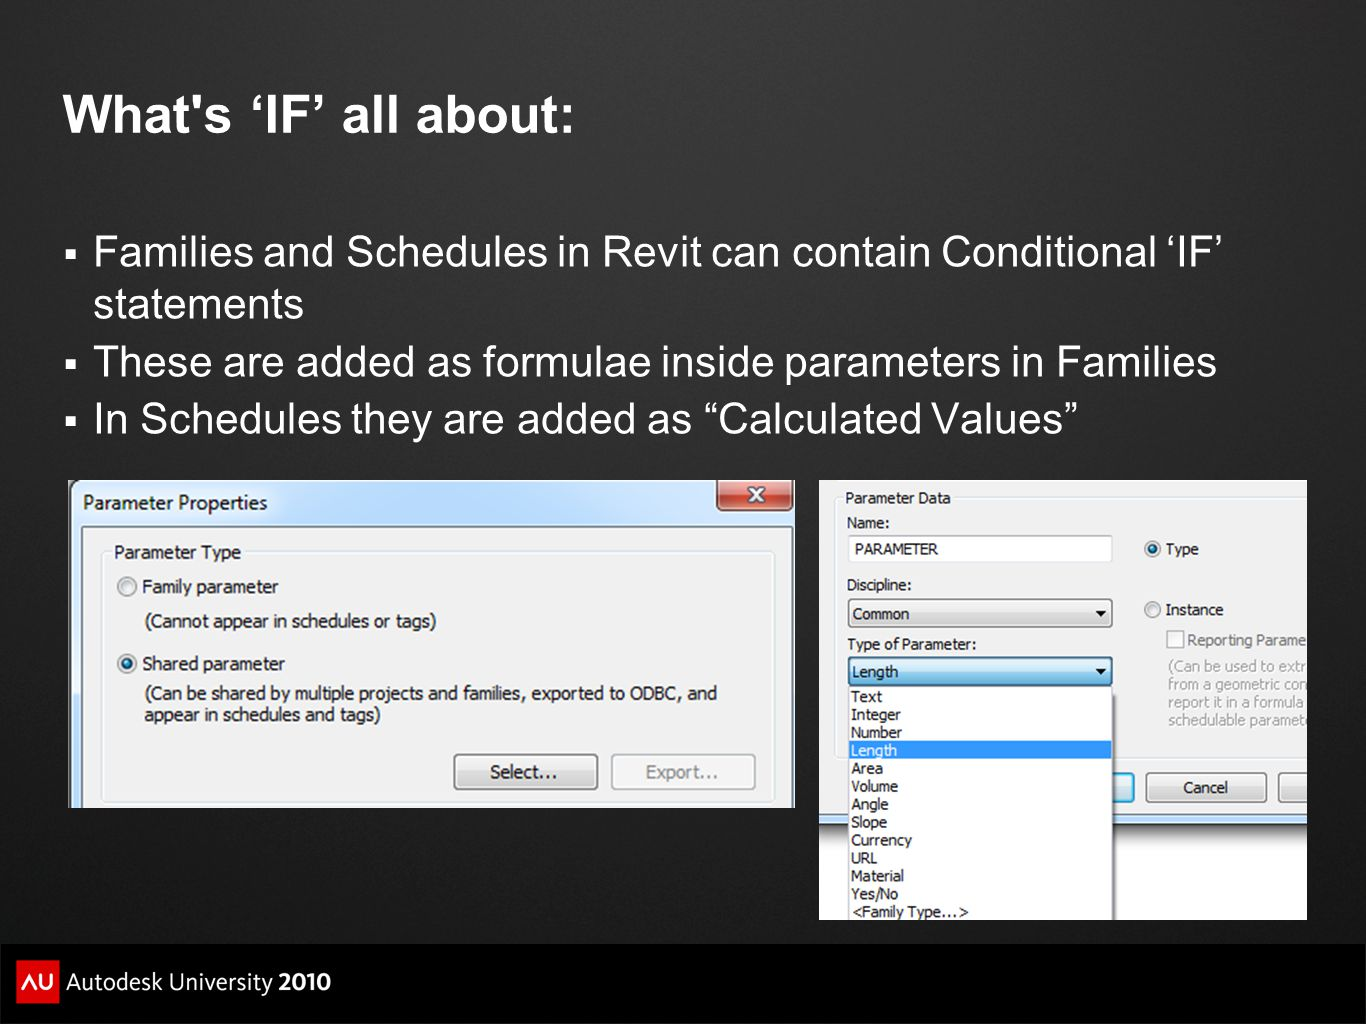 What s 'IF' all about: Families and Schedules in Revit can contain Conditional 'IF' statements.